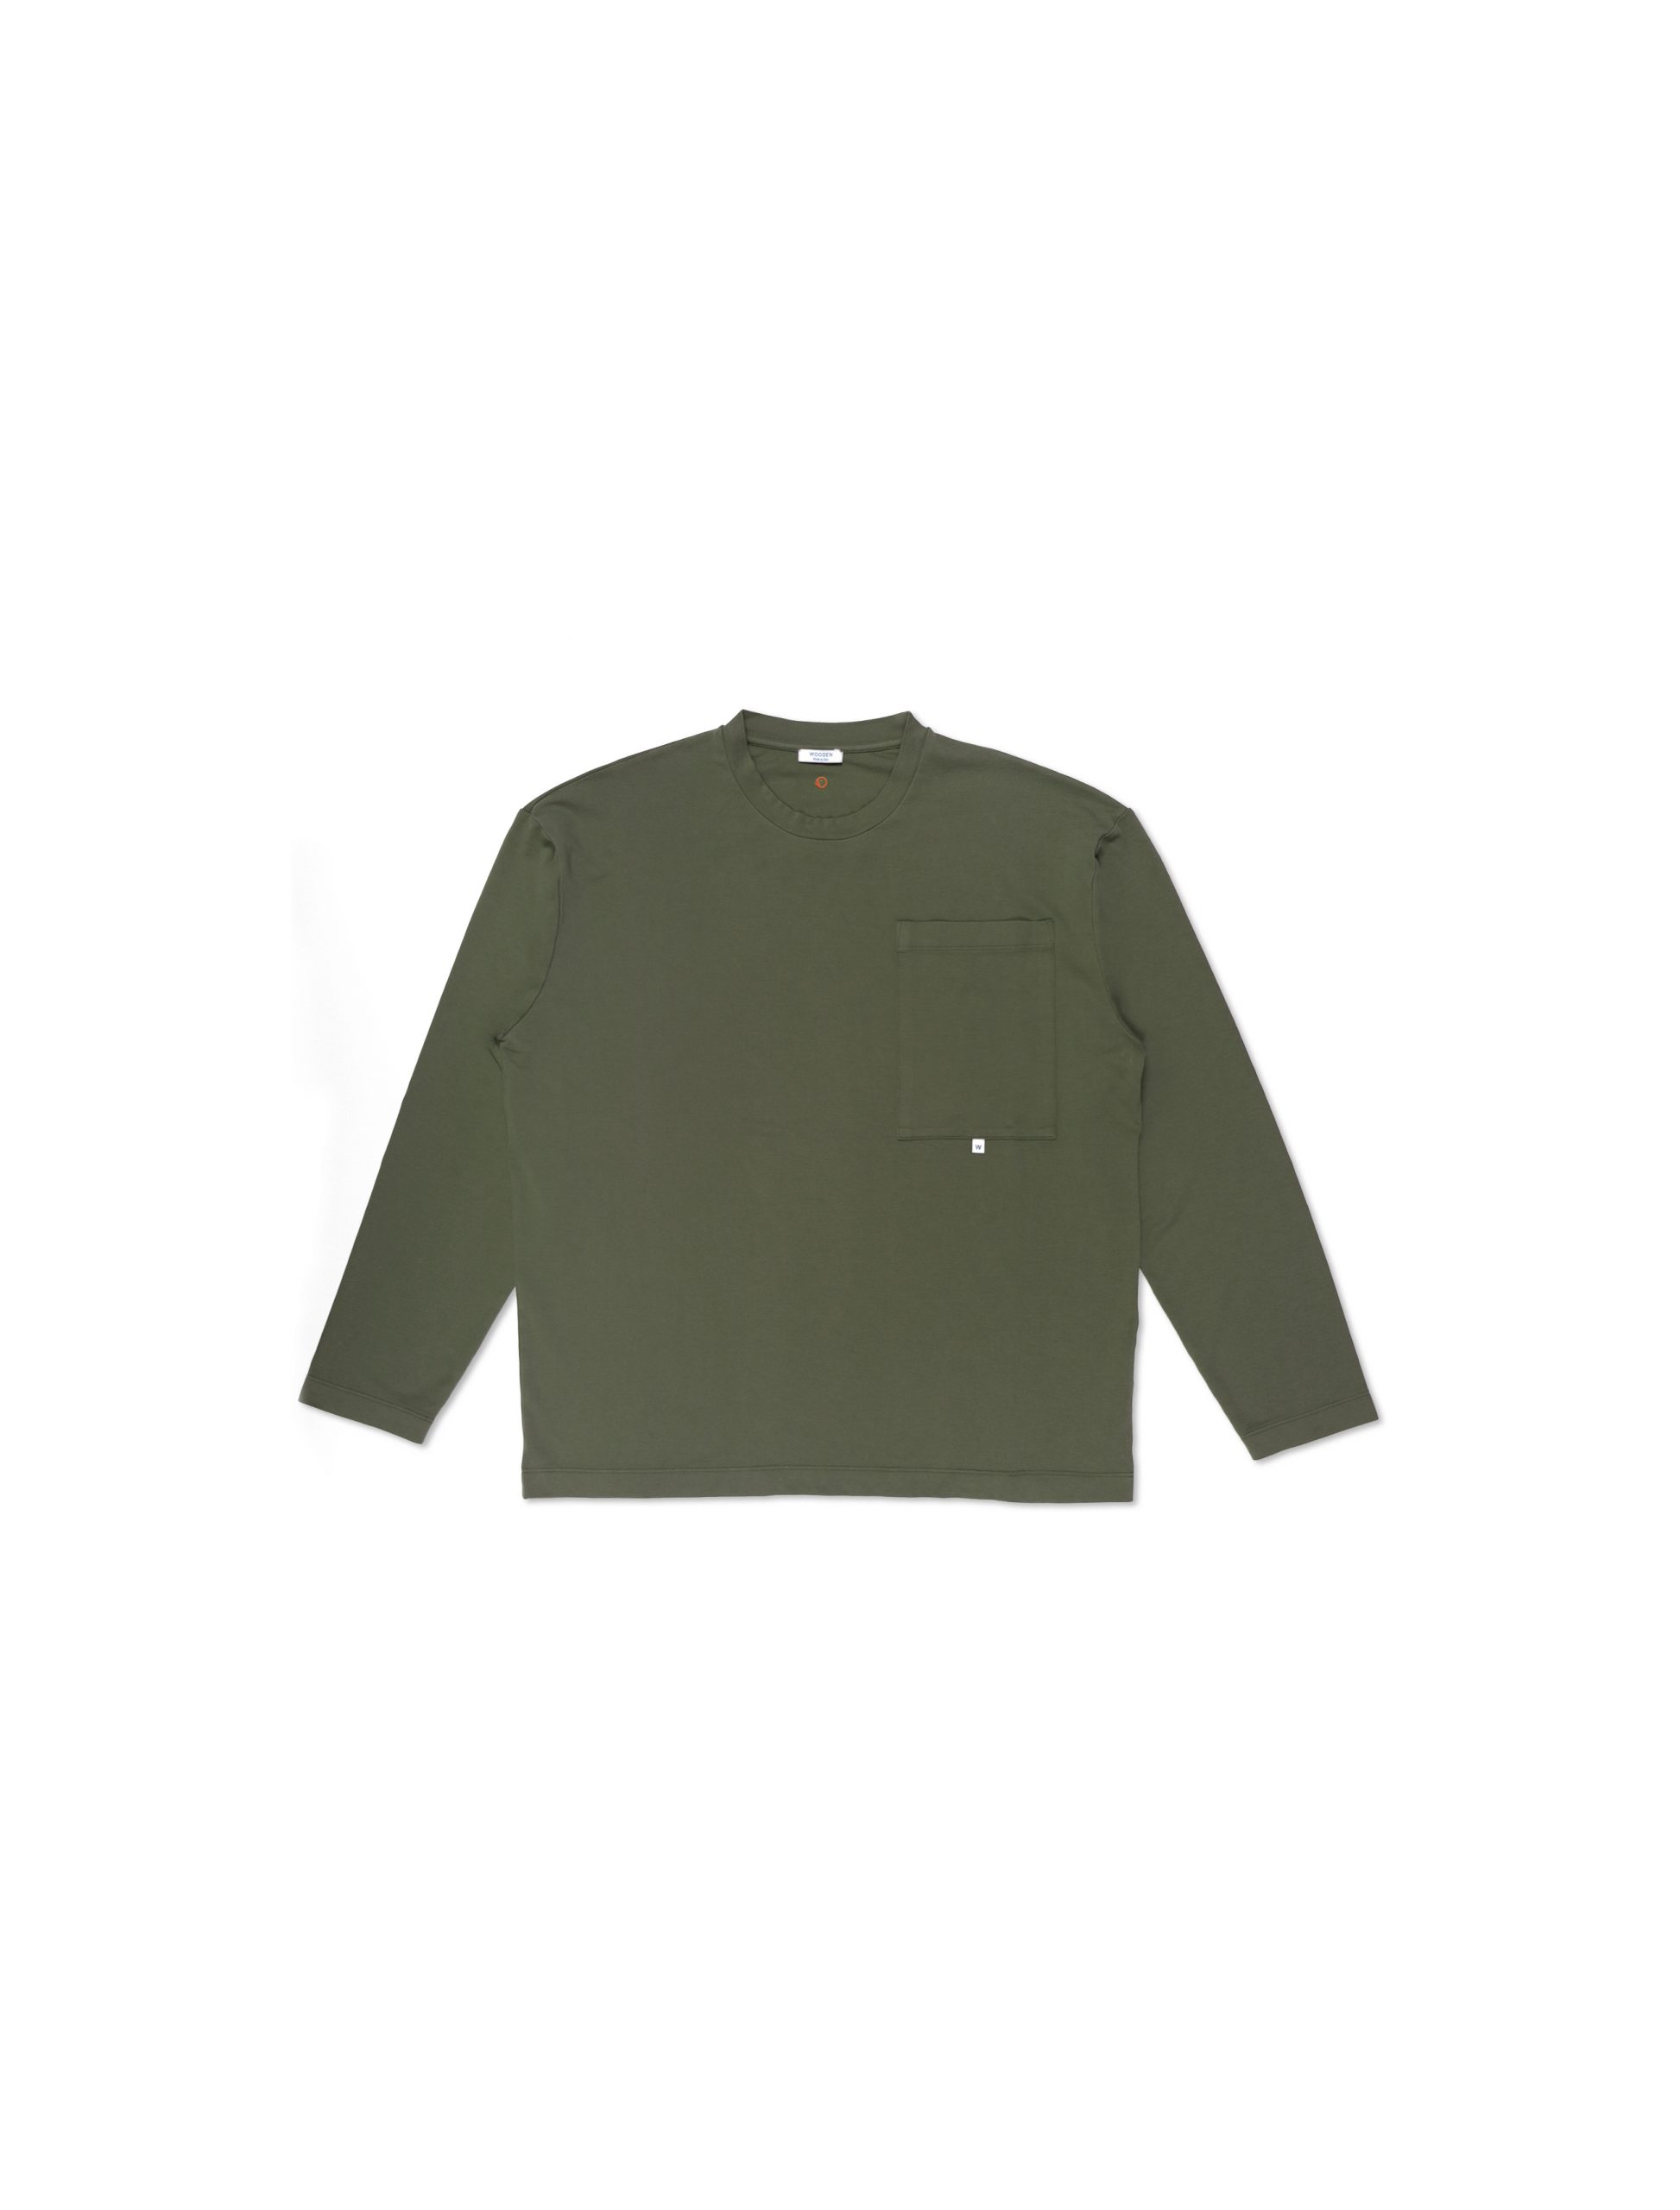 Maglia Longsleeve Military con Tasca | Wooden Store